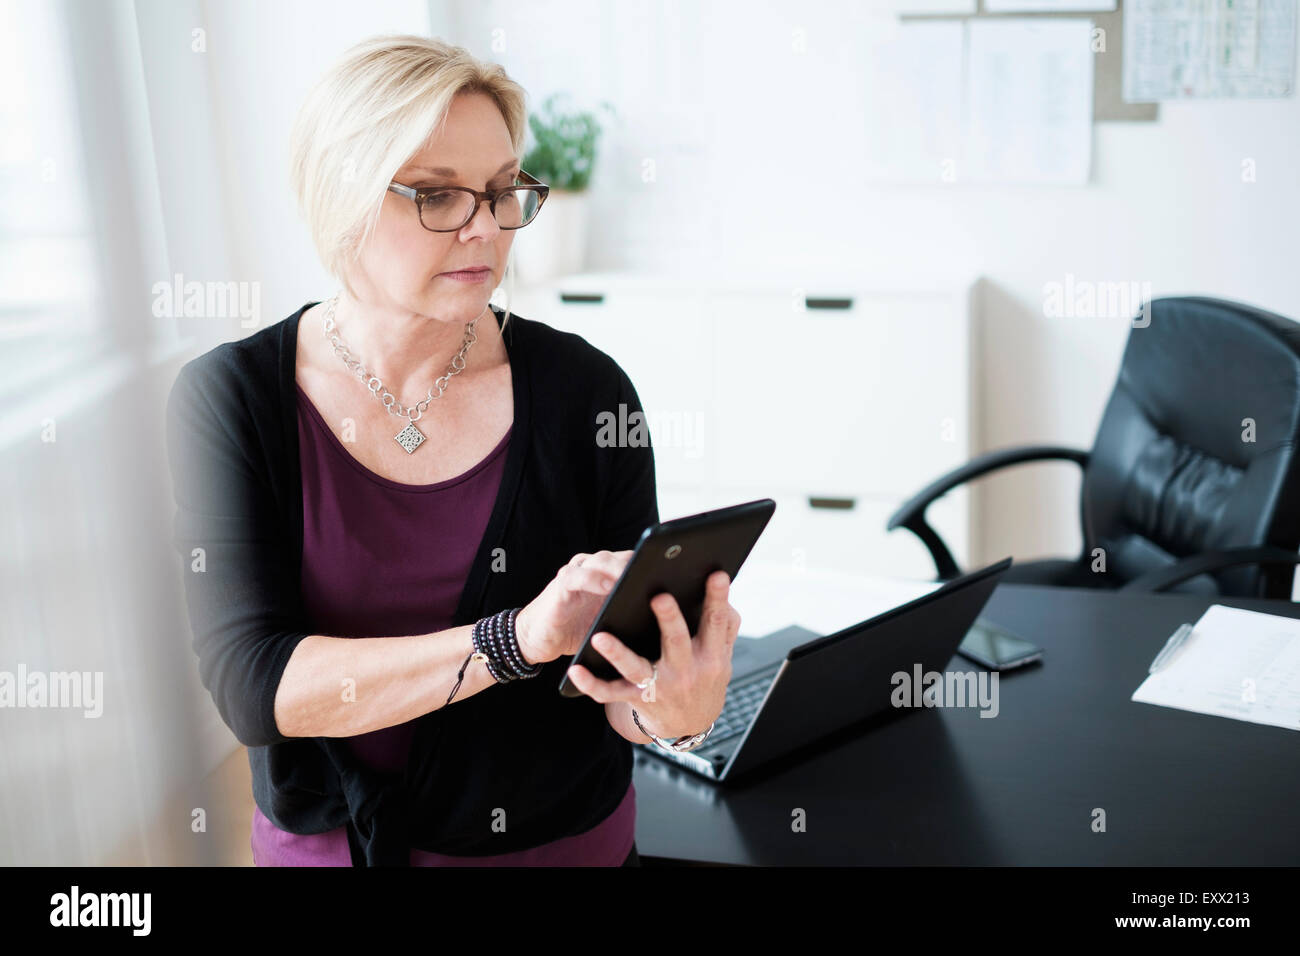 Businesswoman using tablet in office - Stock Image